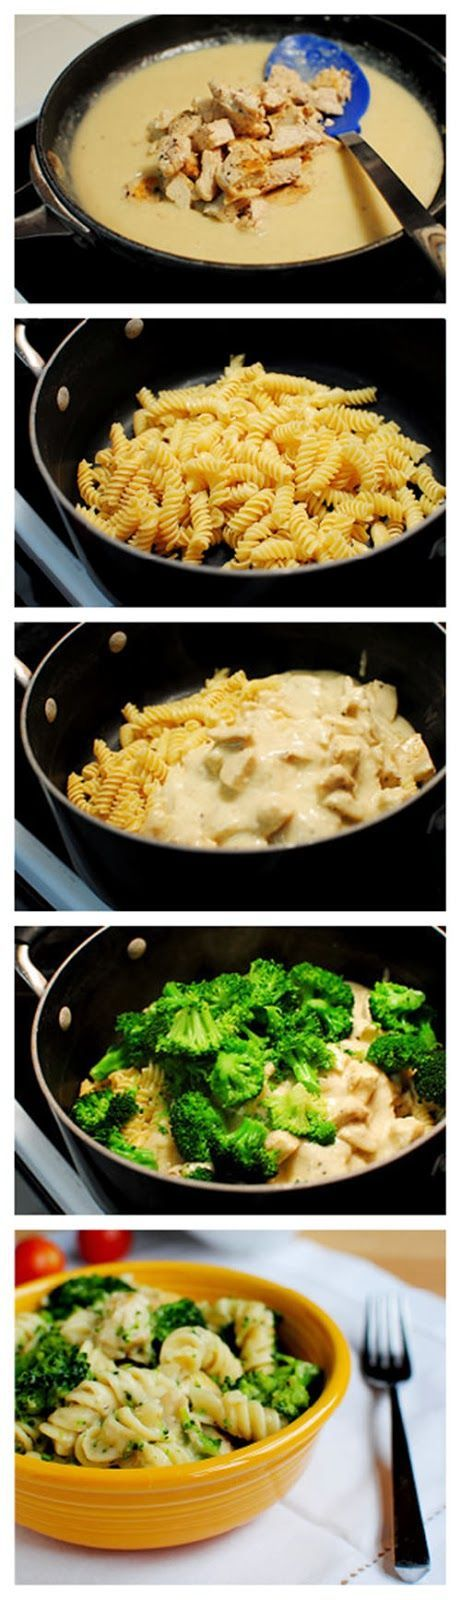 Spirals with finite onion, diced sauteed chicken breast, broccoli and cream Espirales con cebolla finita, dados de pechuga de pollo salteada, brócoli y nata Subido de Pinterest. http://www.isladelecturas.es/index.php/noticias/libros/835-las-aventuras-de-indiana-juana-de-jaime-fuster A la venta en AMAZON. Feliz lectura.